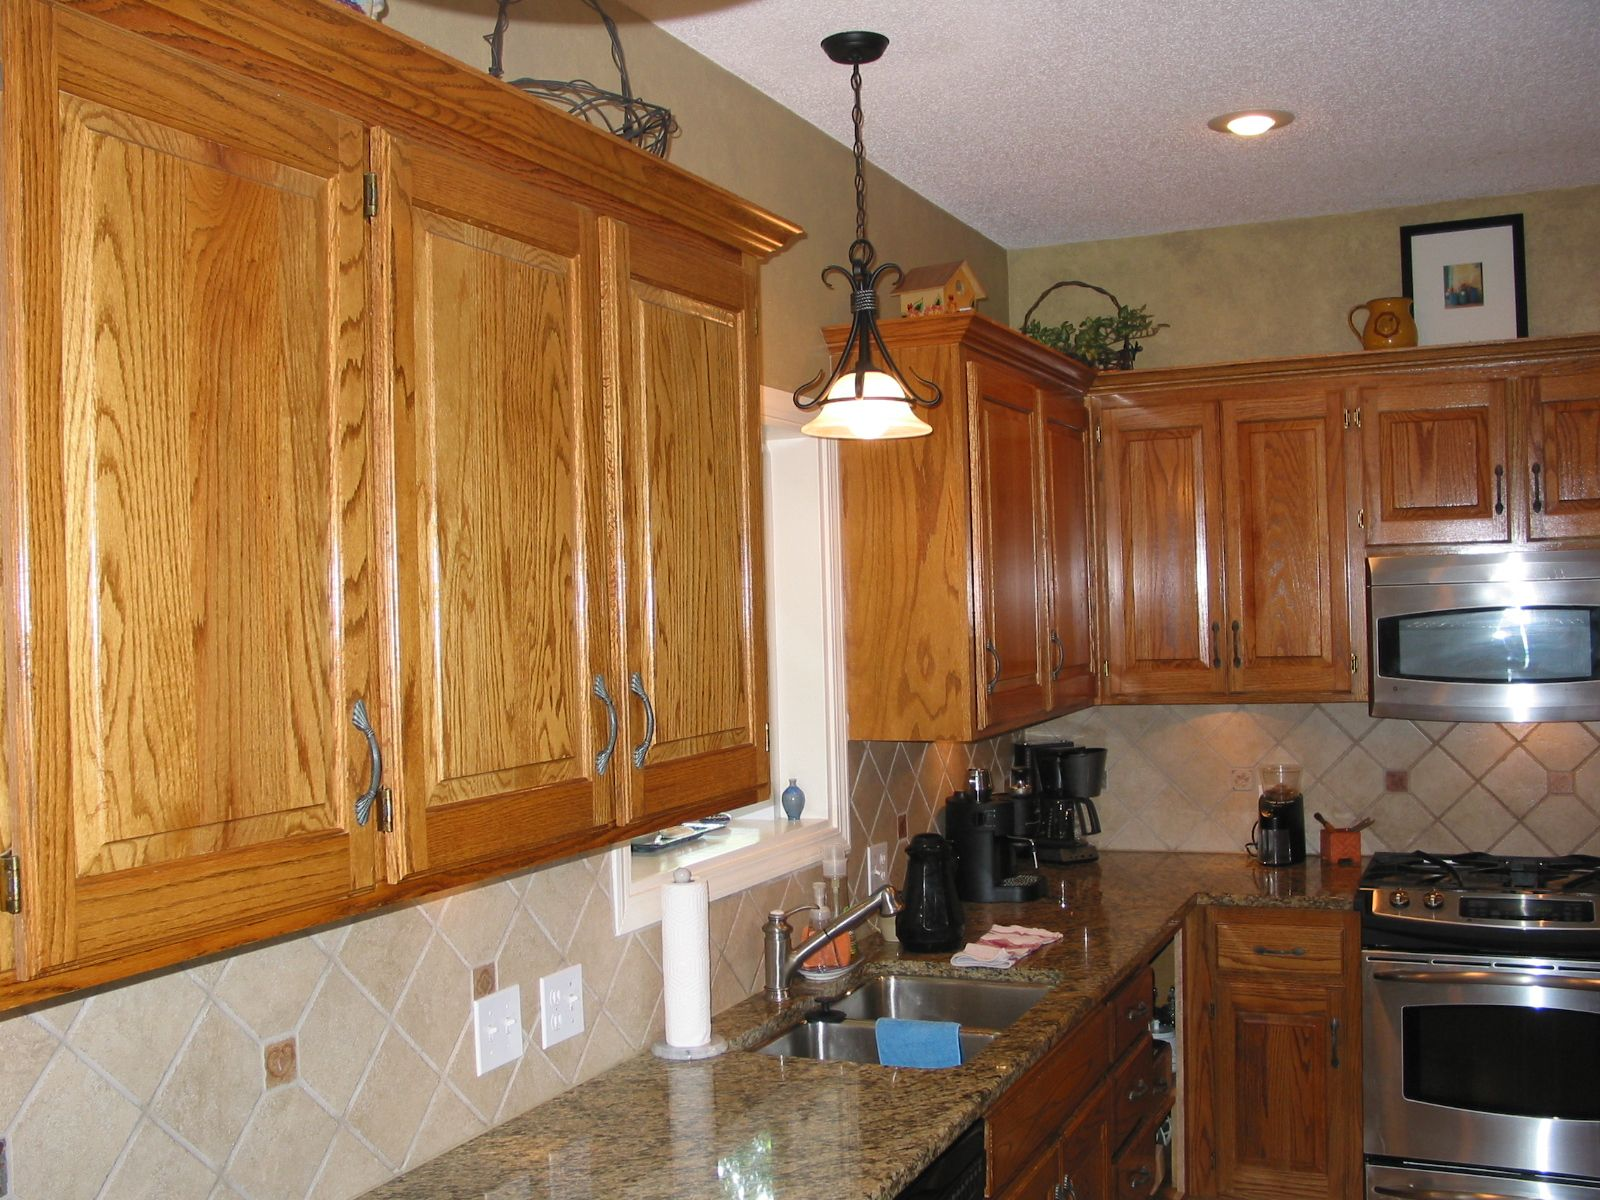 photosofkitchensoakandgranite small horseshoe shaped - Golden Oak Kitchen Design Ideas